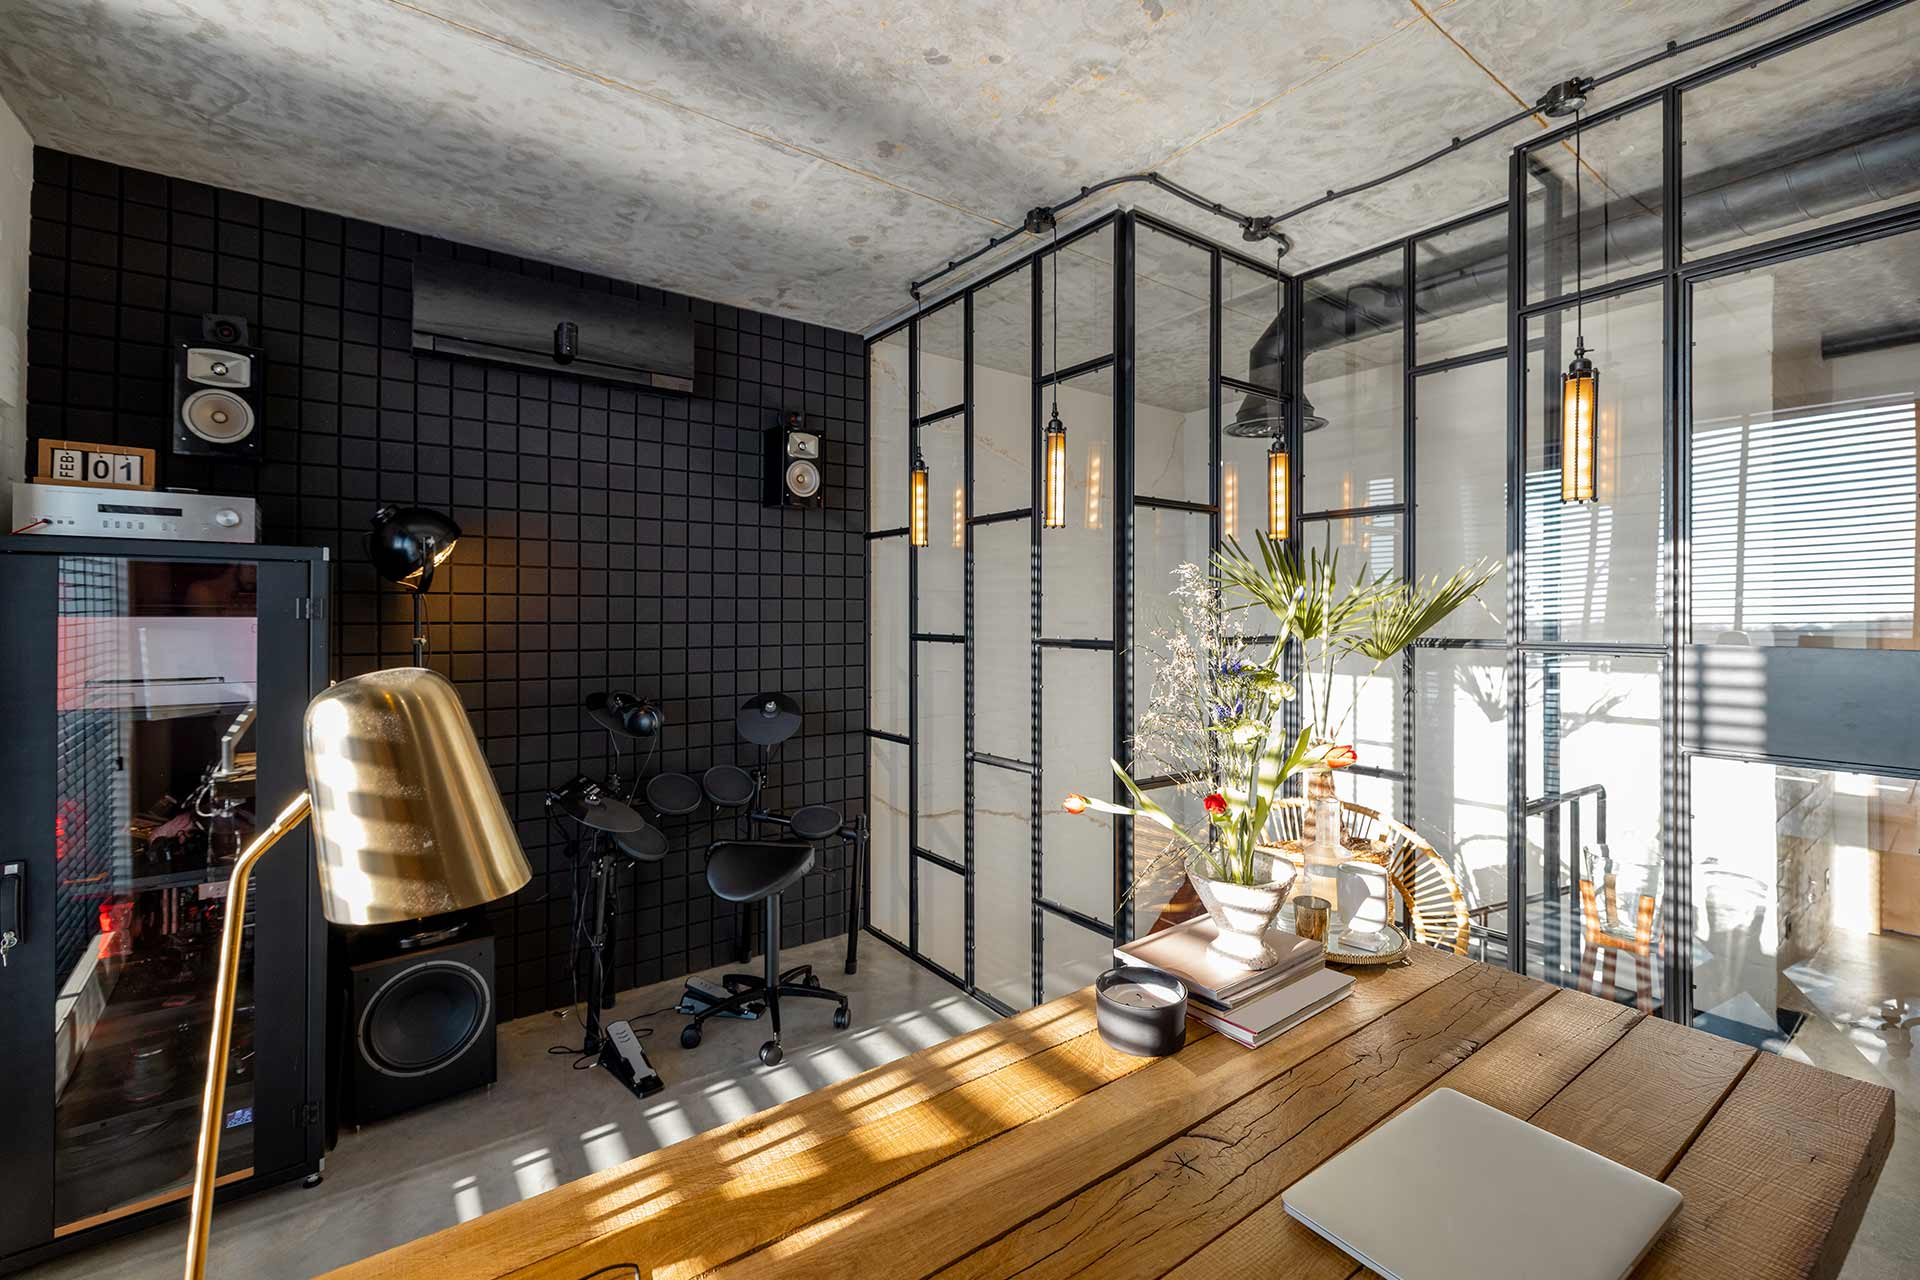 home-office-interior-in-modern-natural-style-98DLTQ3.jpg